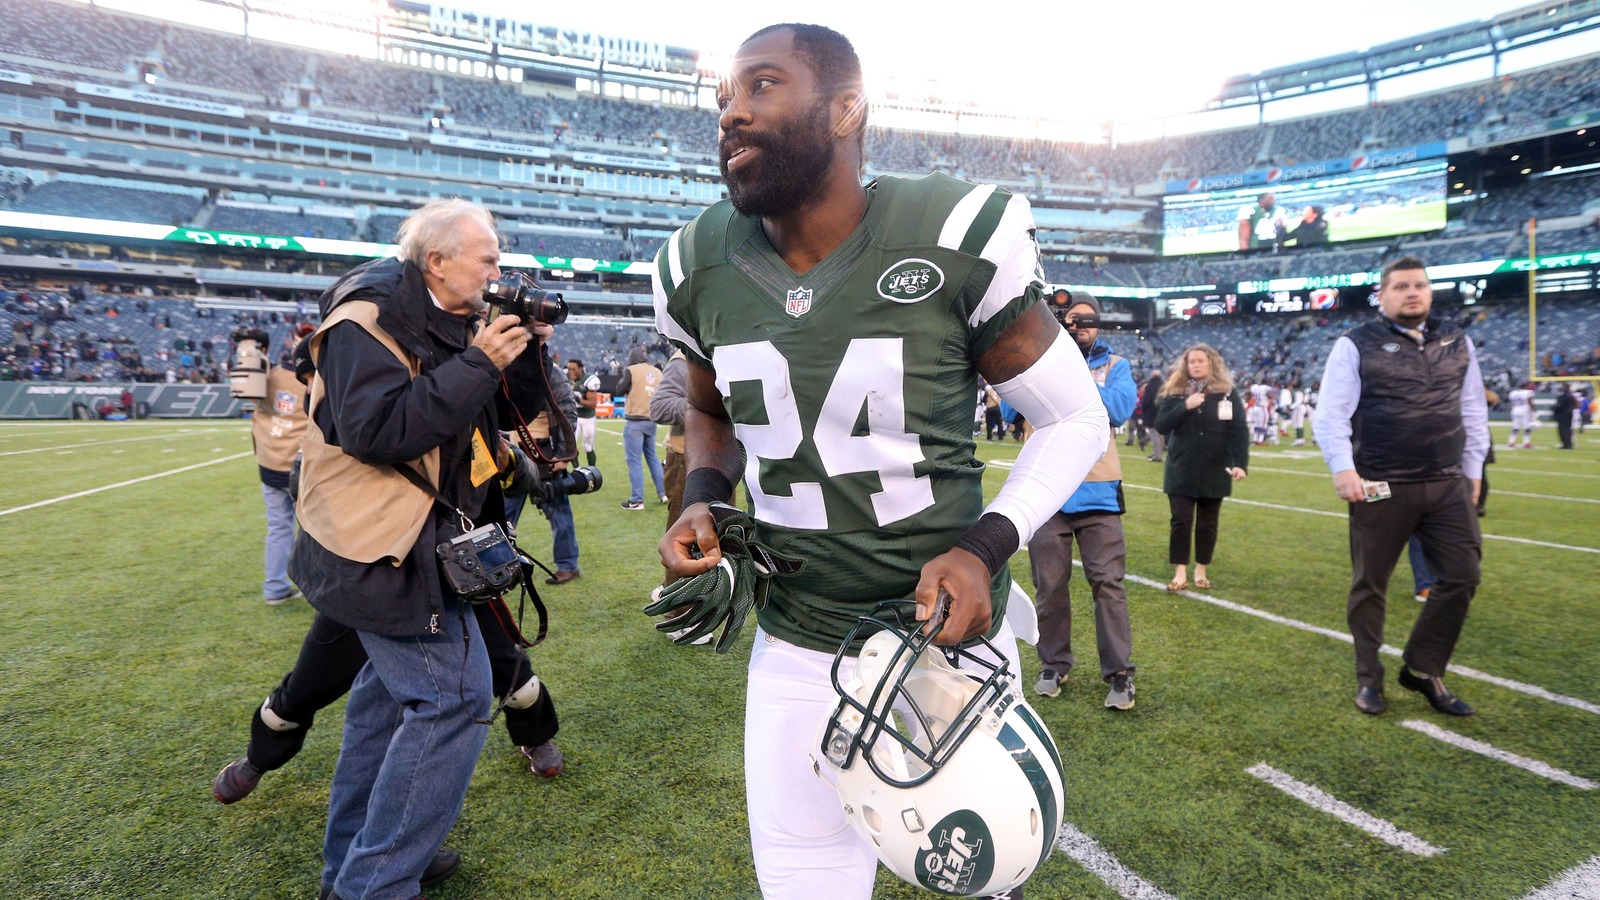 Jets' Darrelle Revis turns himself in to police in Pittsburgh